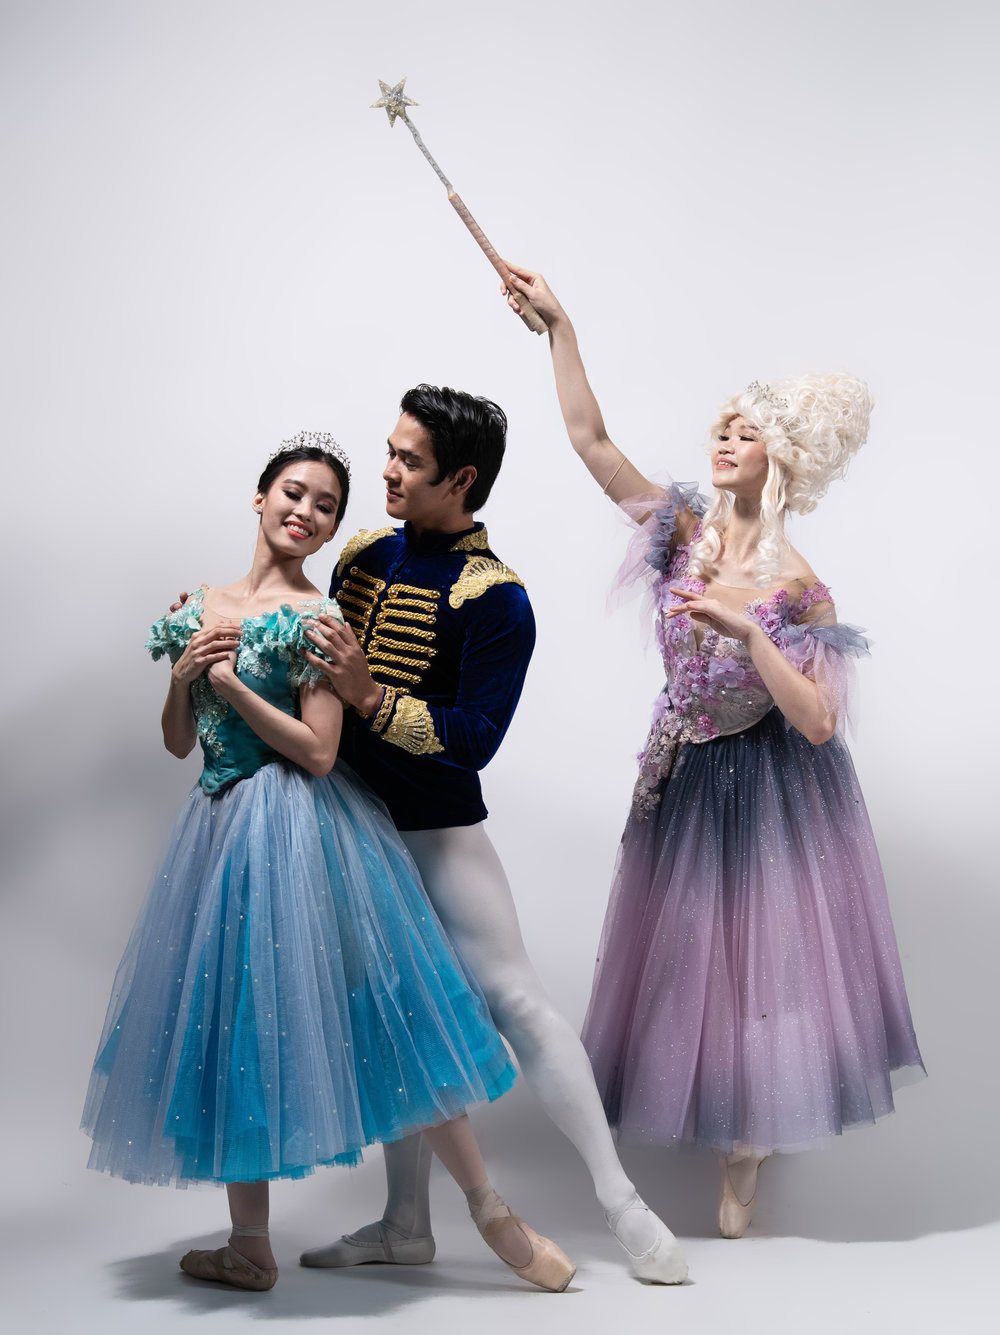 Ballet Manila principals Joan Emery Sia and Rudy De Dios, as Cinderella and Prince Charming, meet and fall in love in a grand ball – with the help of Fairy Godmother (Kong Ke Xin). Photo by MarBi Photography